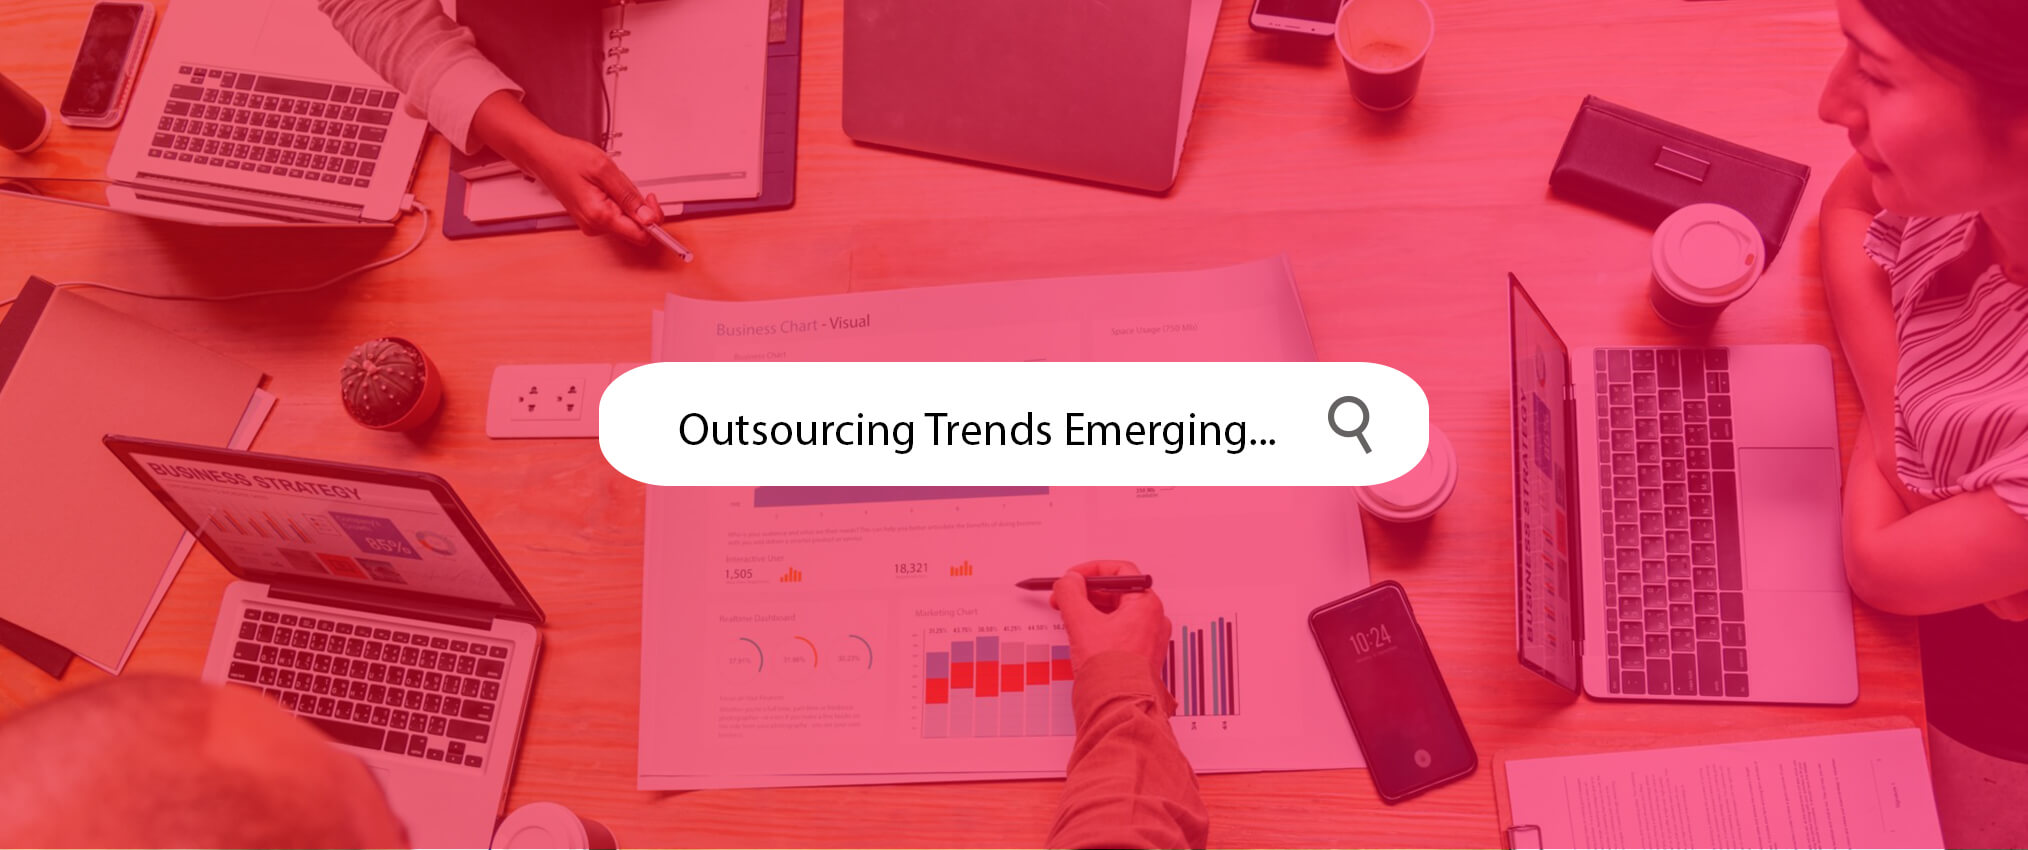 outsourcing-trends-emerging-for-2019